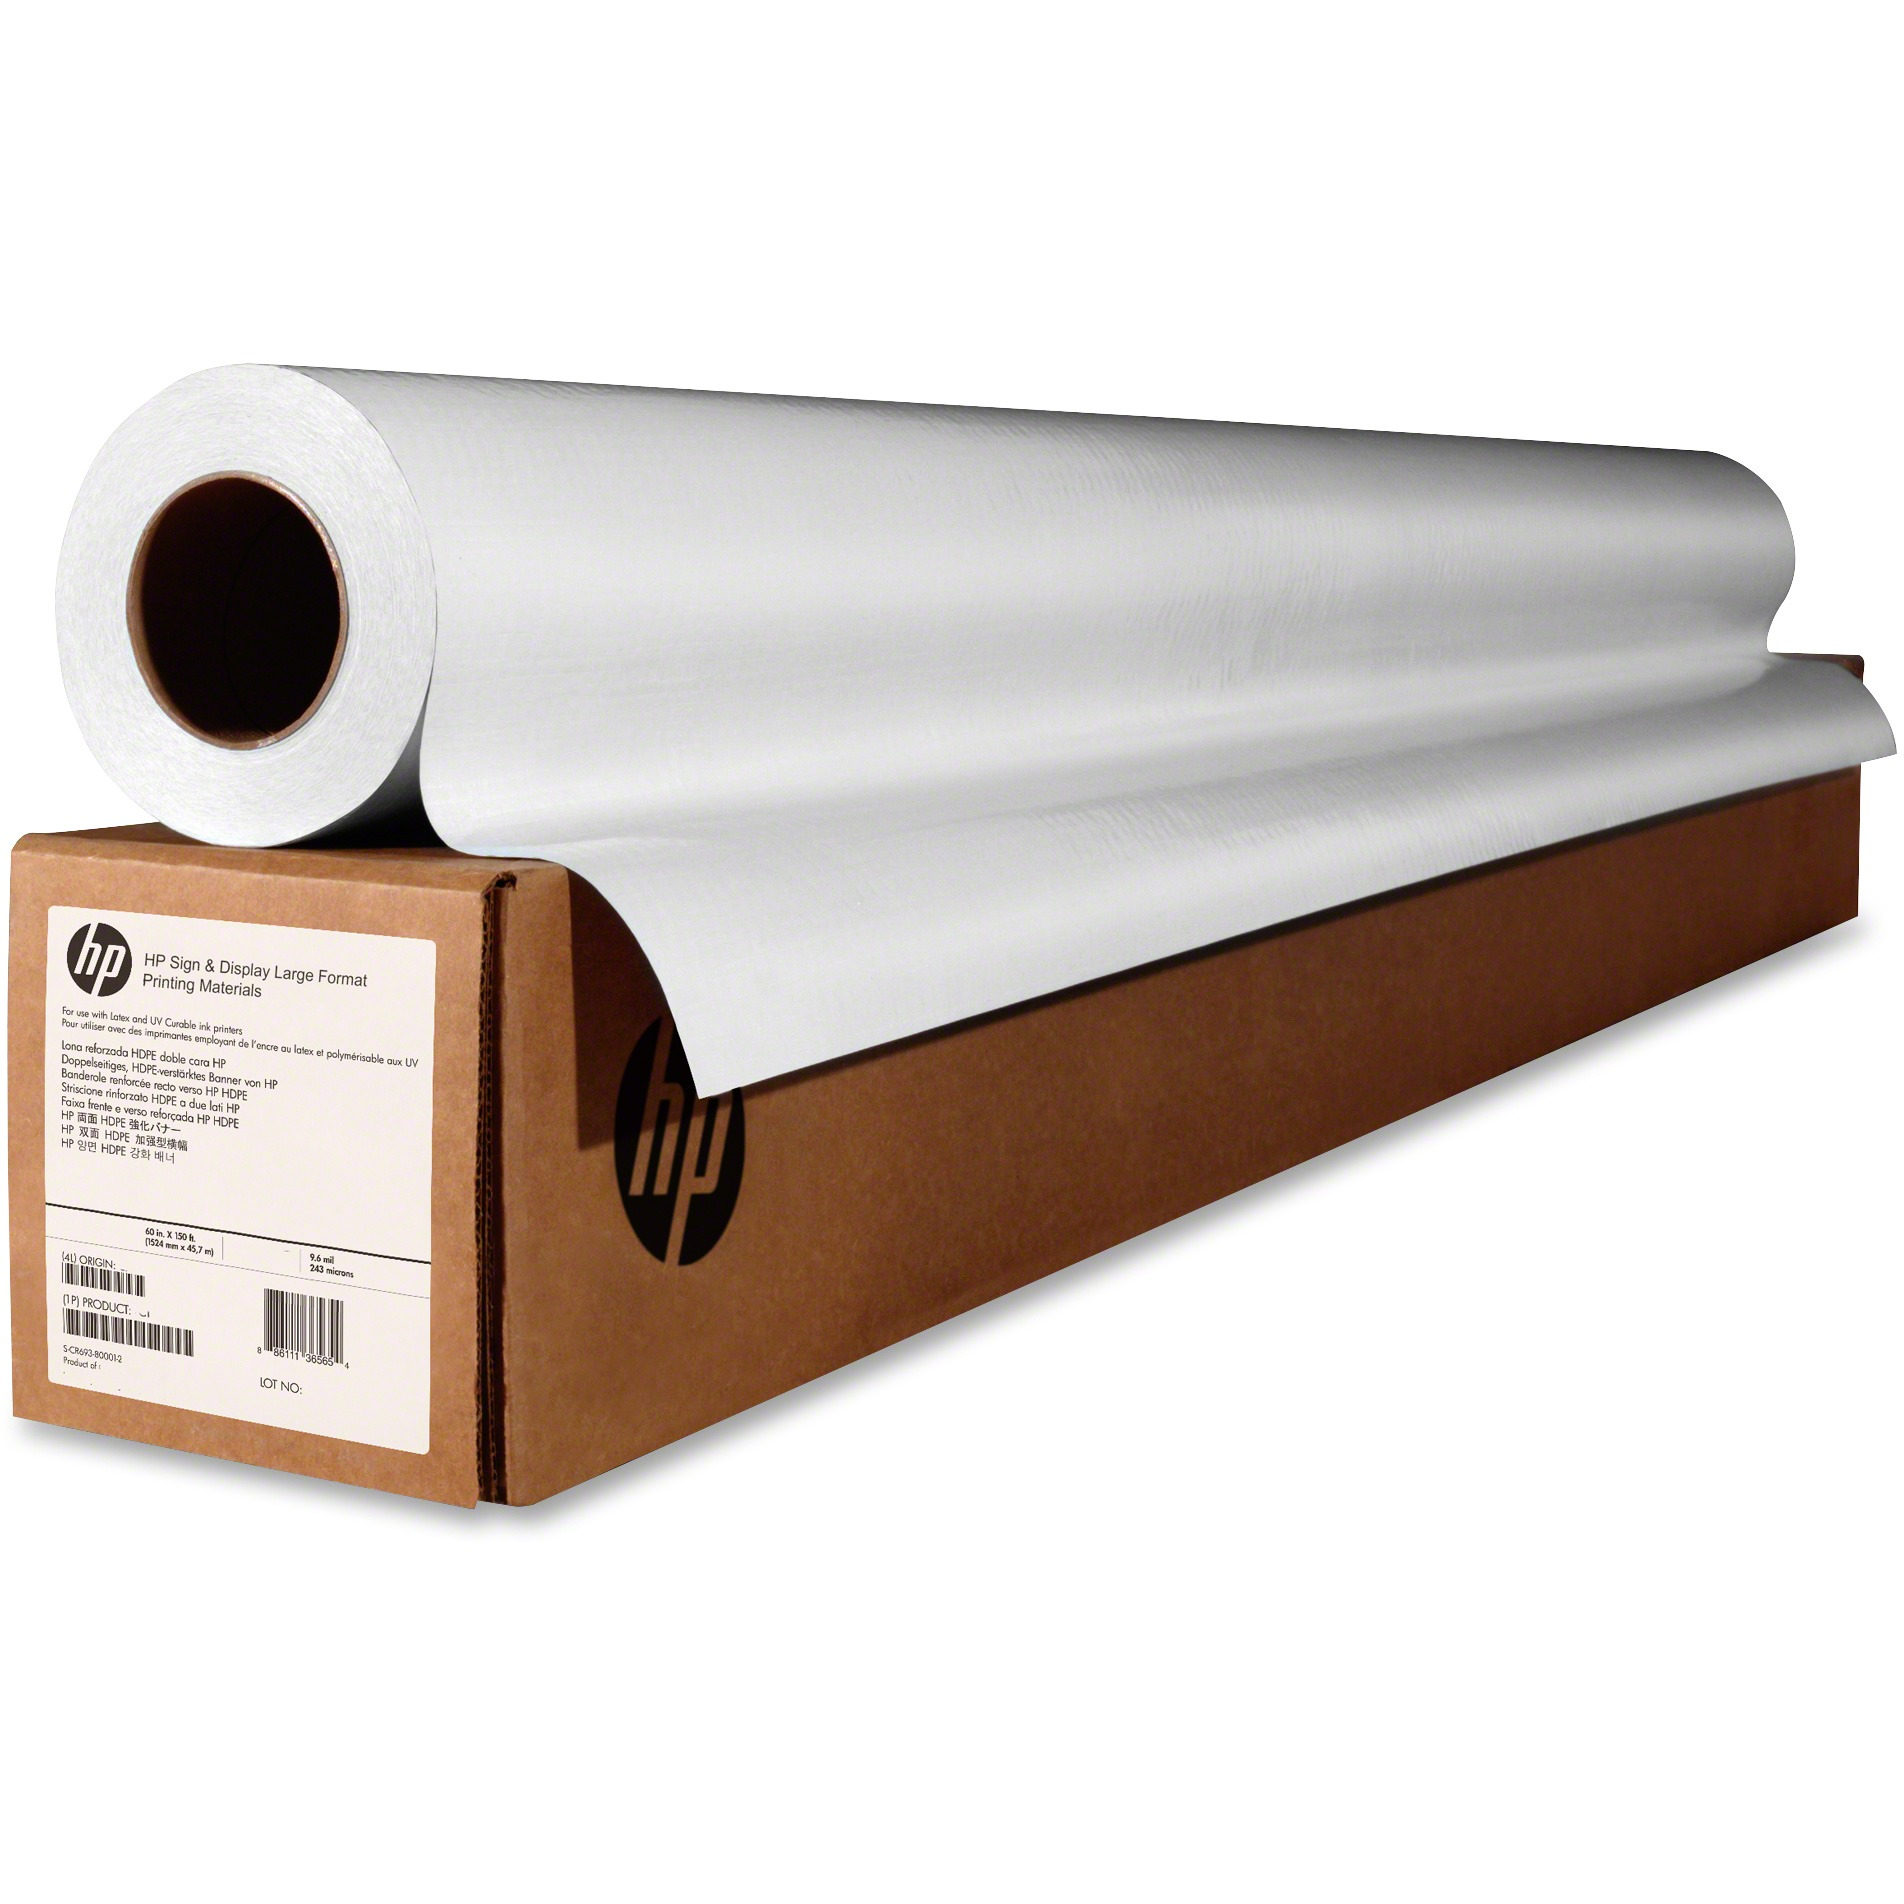 HP, HEWC3859A, Translucent Bond Paper, 1 Roll, Translucent